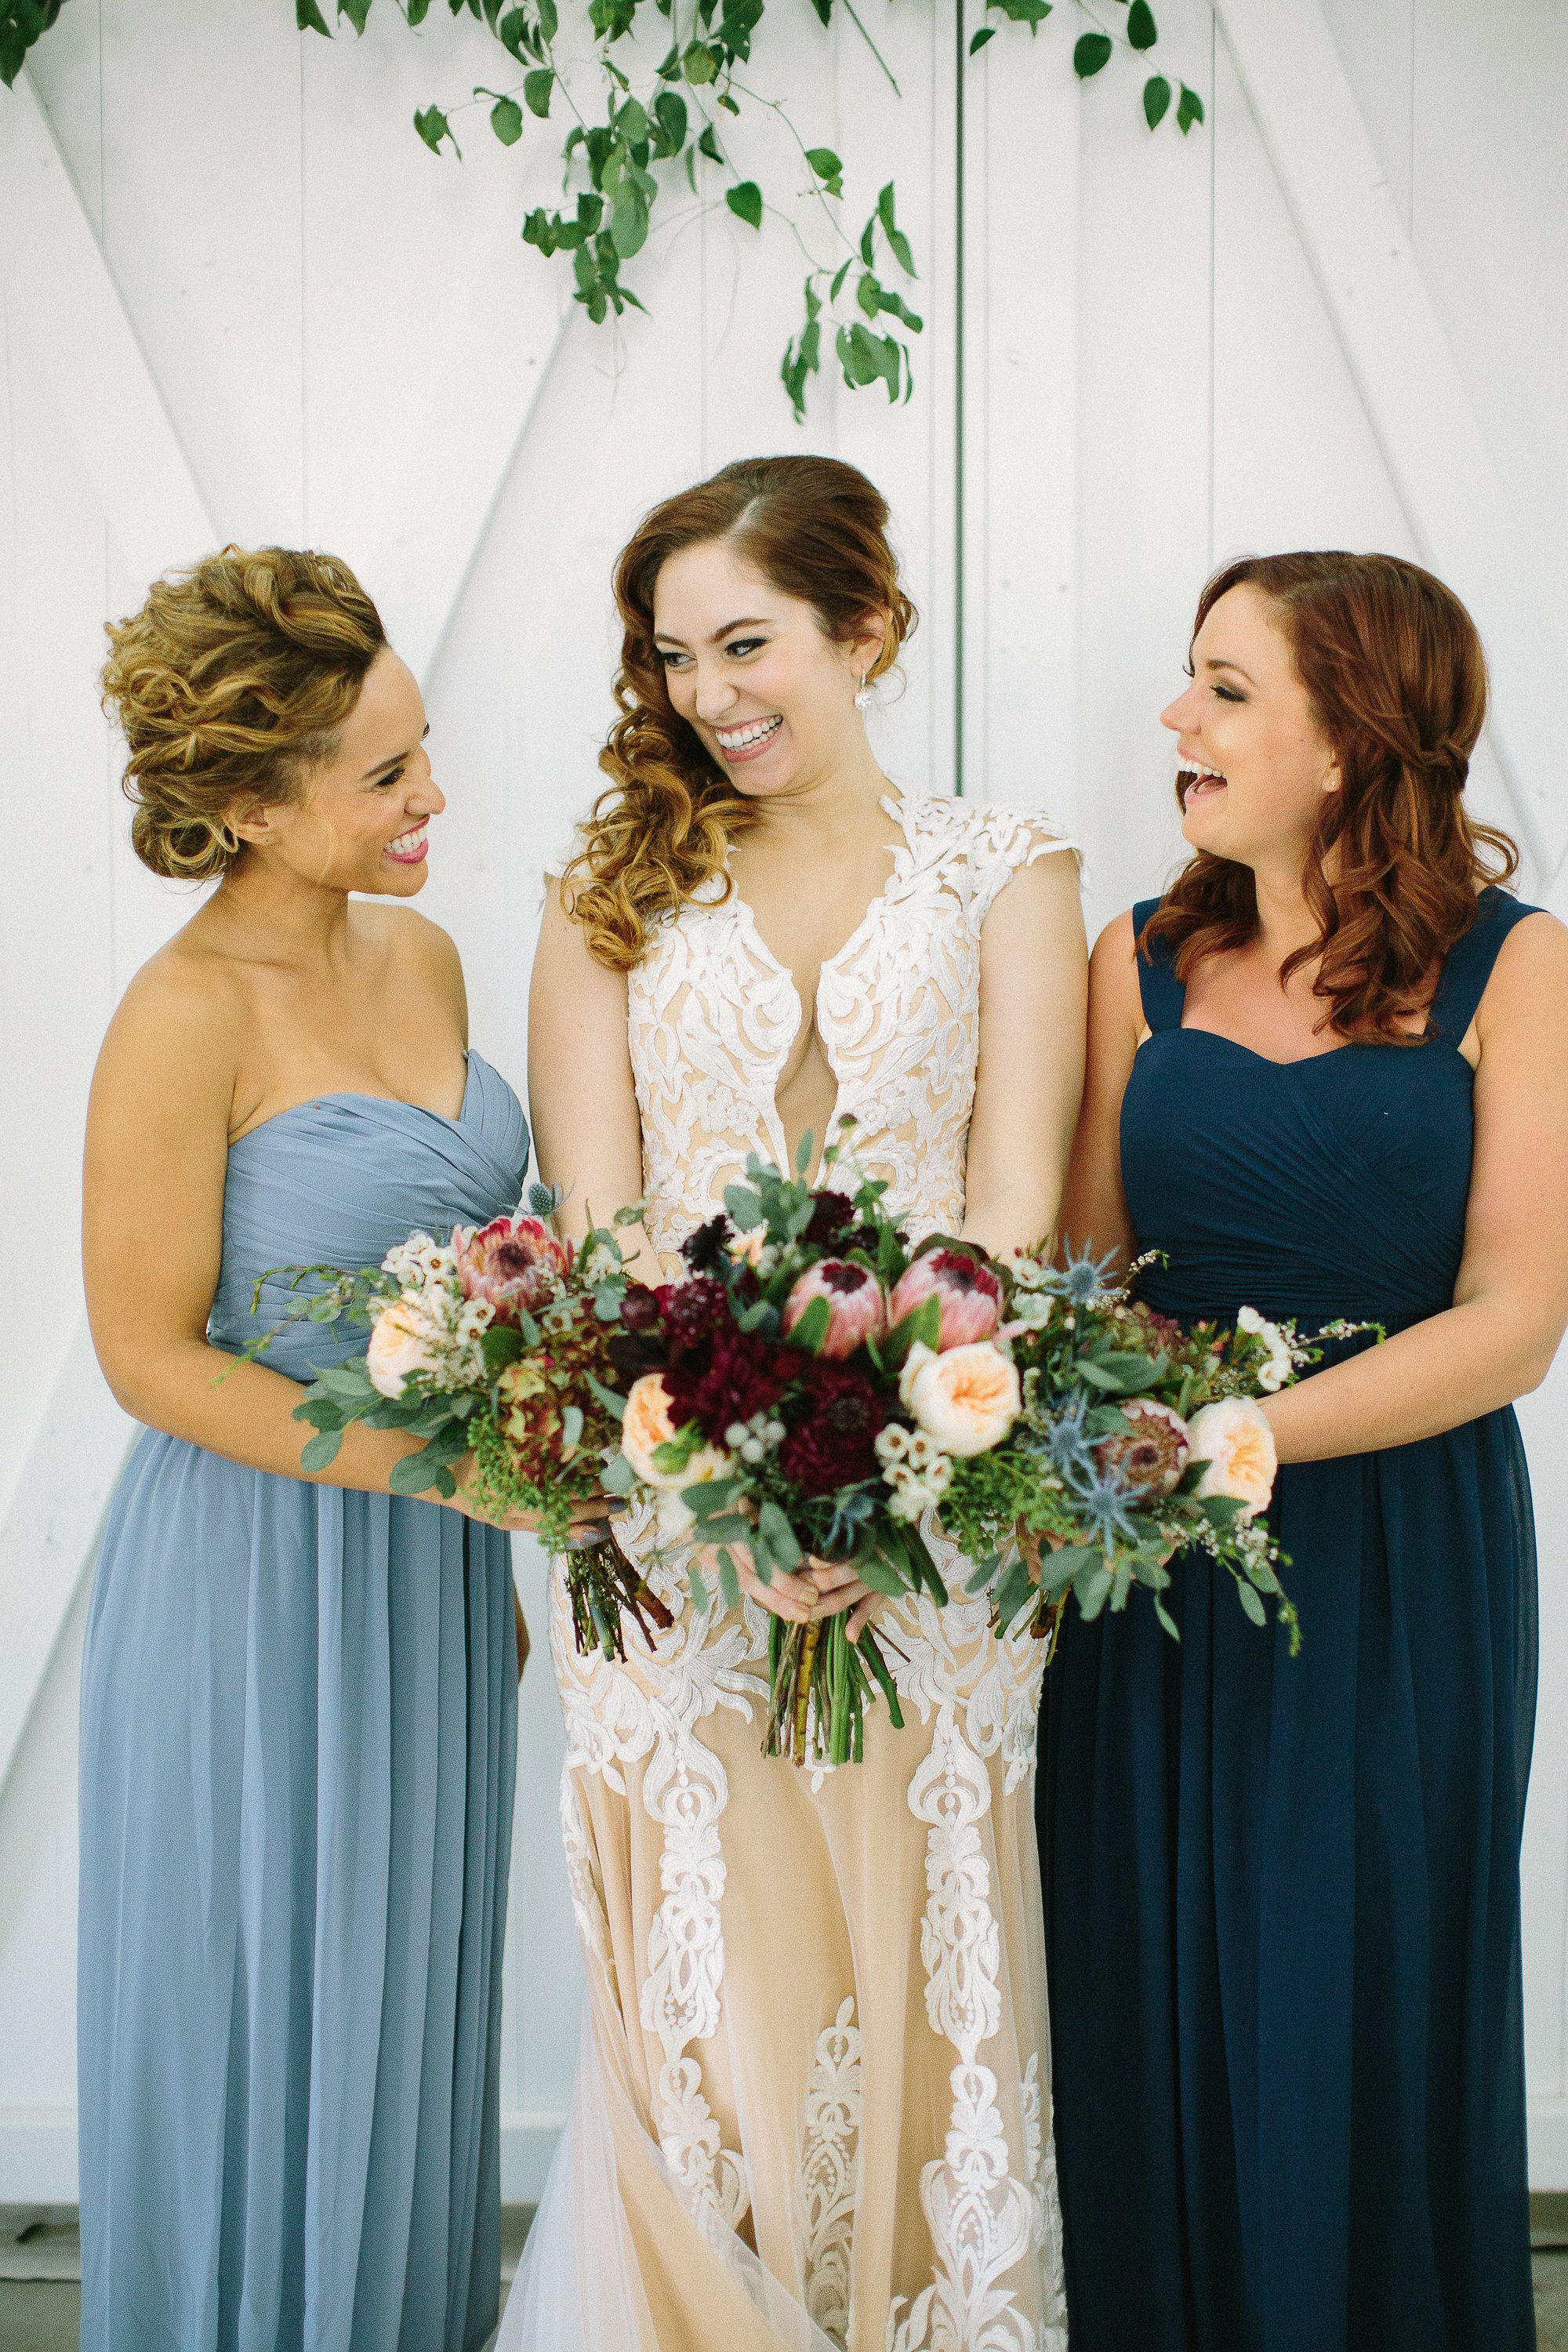 Beautiful bridesmaid dresses from vow to be chic rent for 99 or beautiful bridesmaid dresses from vow to be chic rent for 99 or less ombrellifo Images